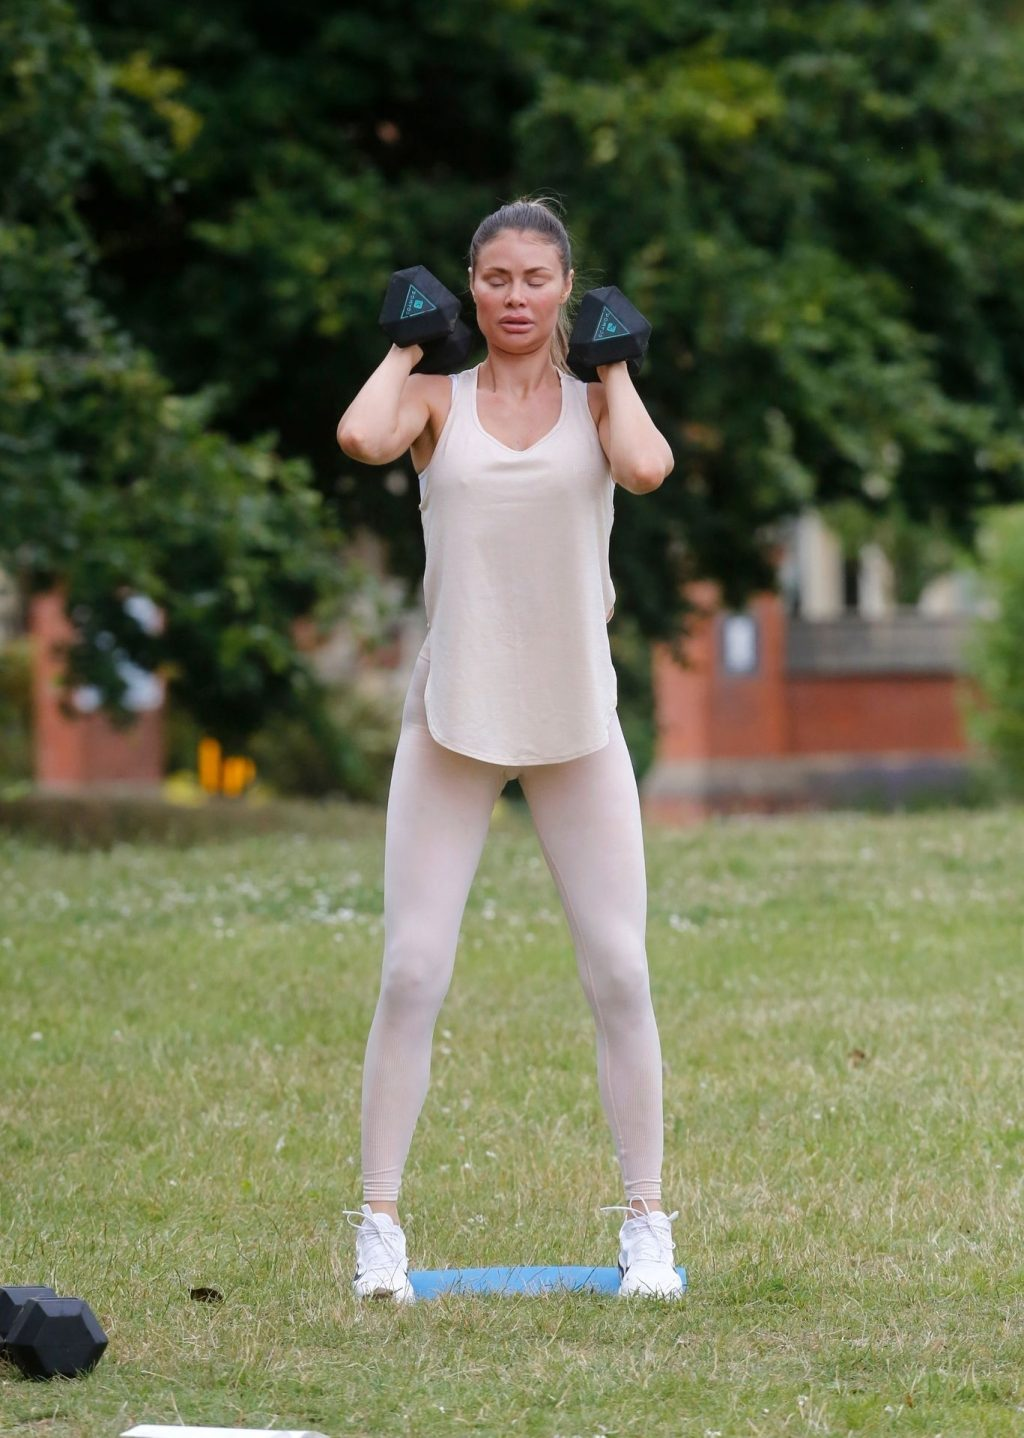 Busty Chloe Sims Works Out with Her Personal Trainer in a Park (31 Photos)